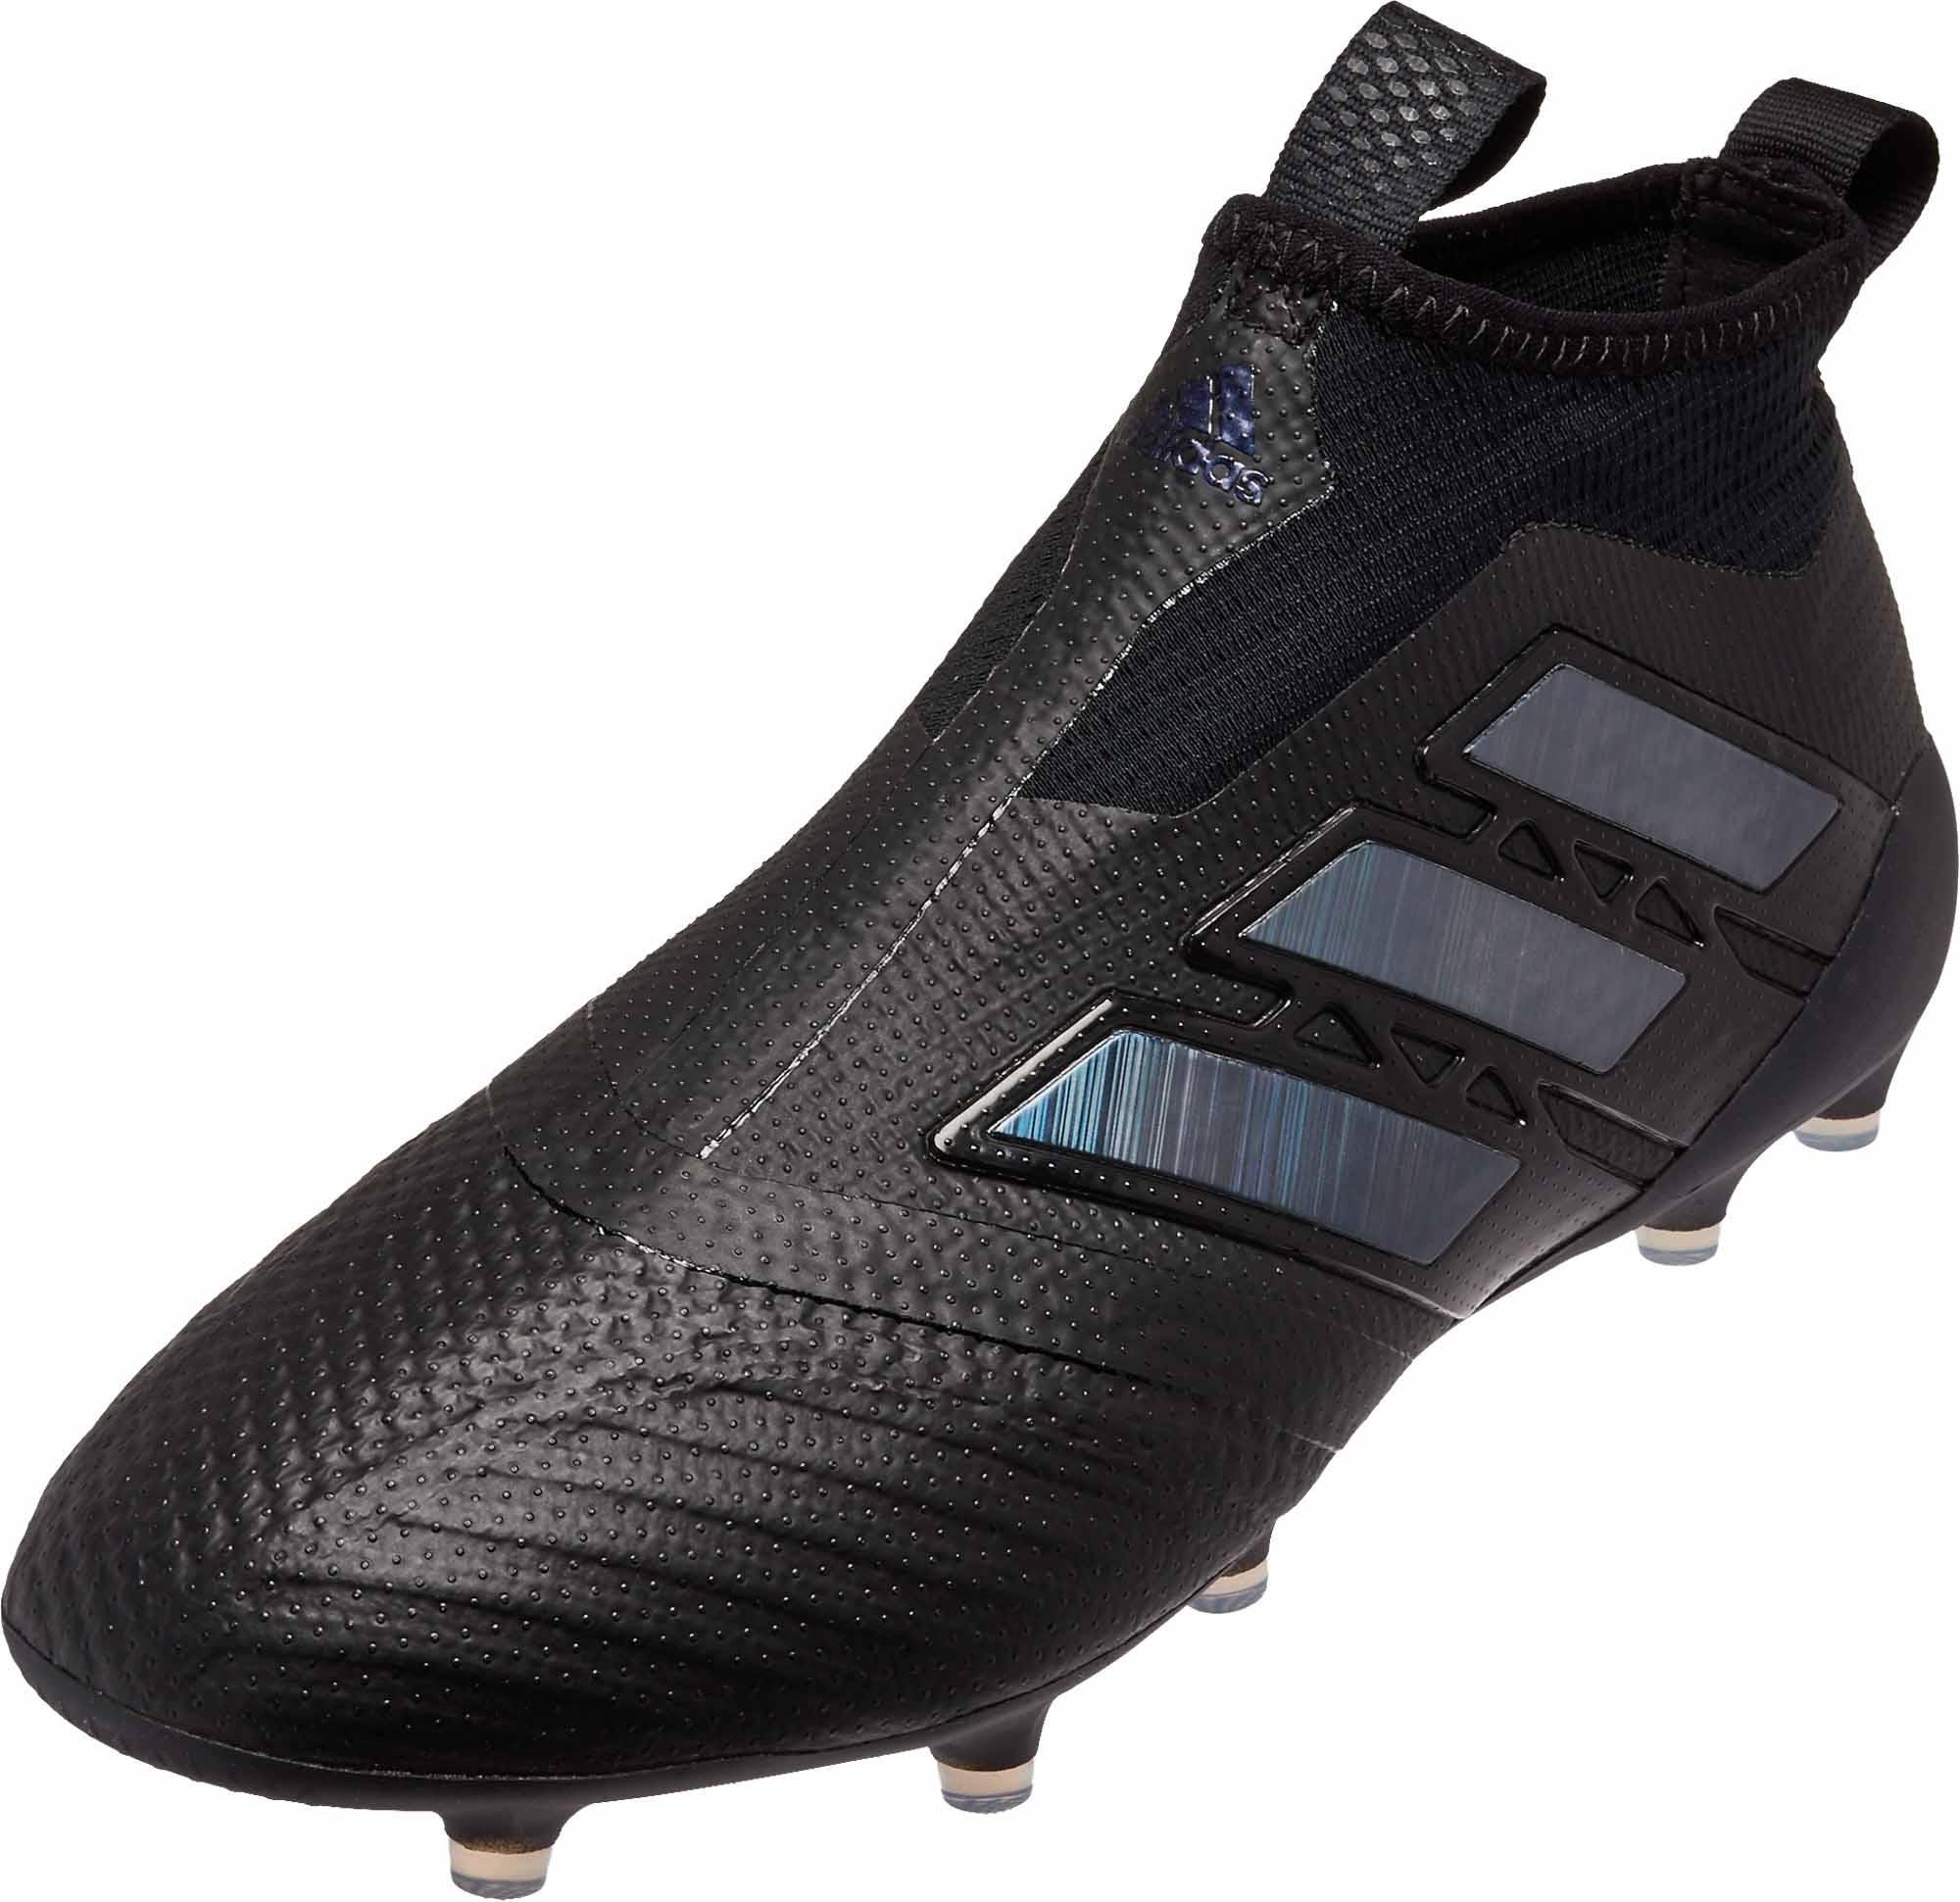 54d444ef9a39 adidas ACE 17+ Purecontrol FG Soccer Cleats - Black & Utility Black ...